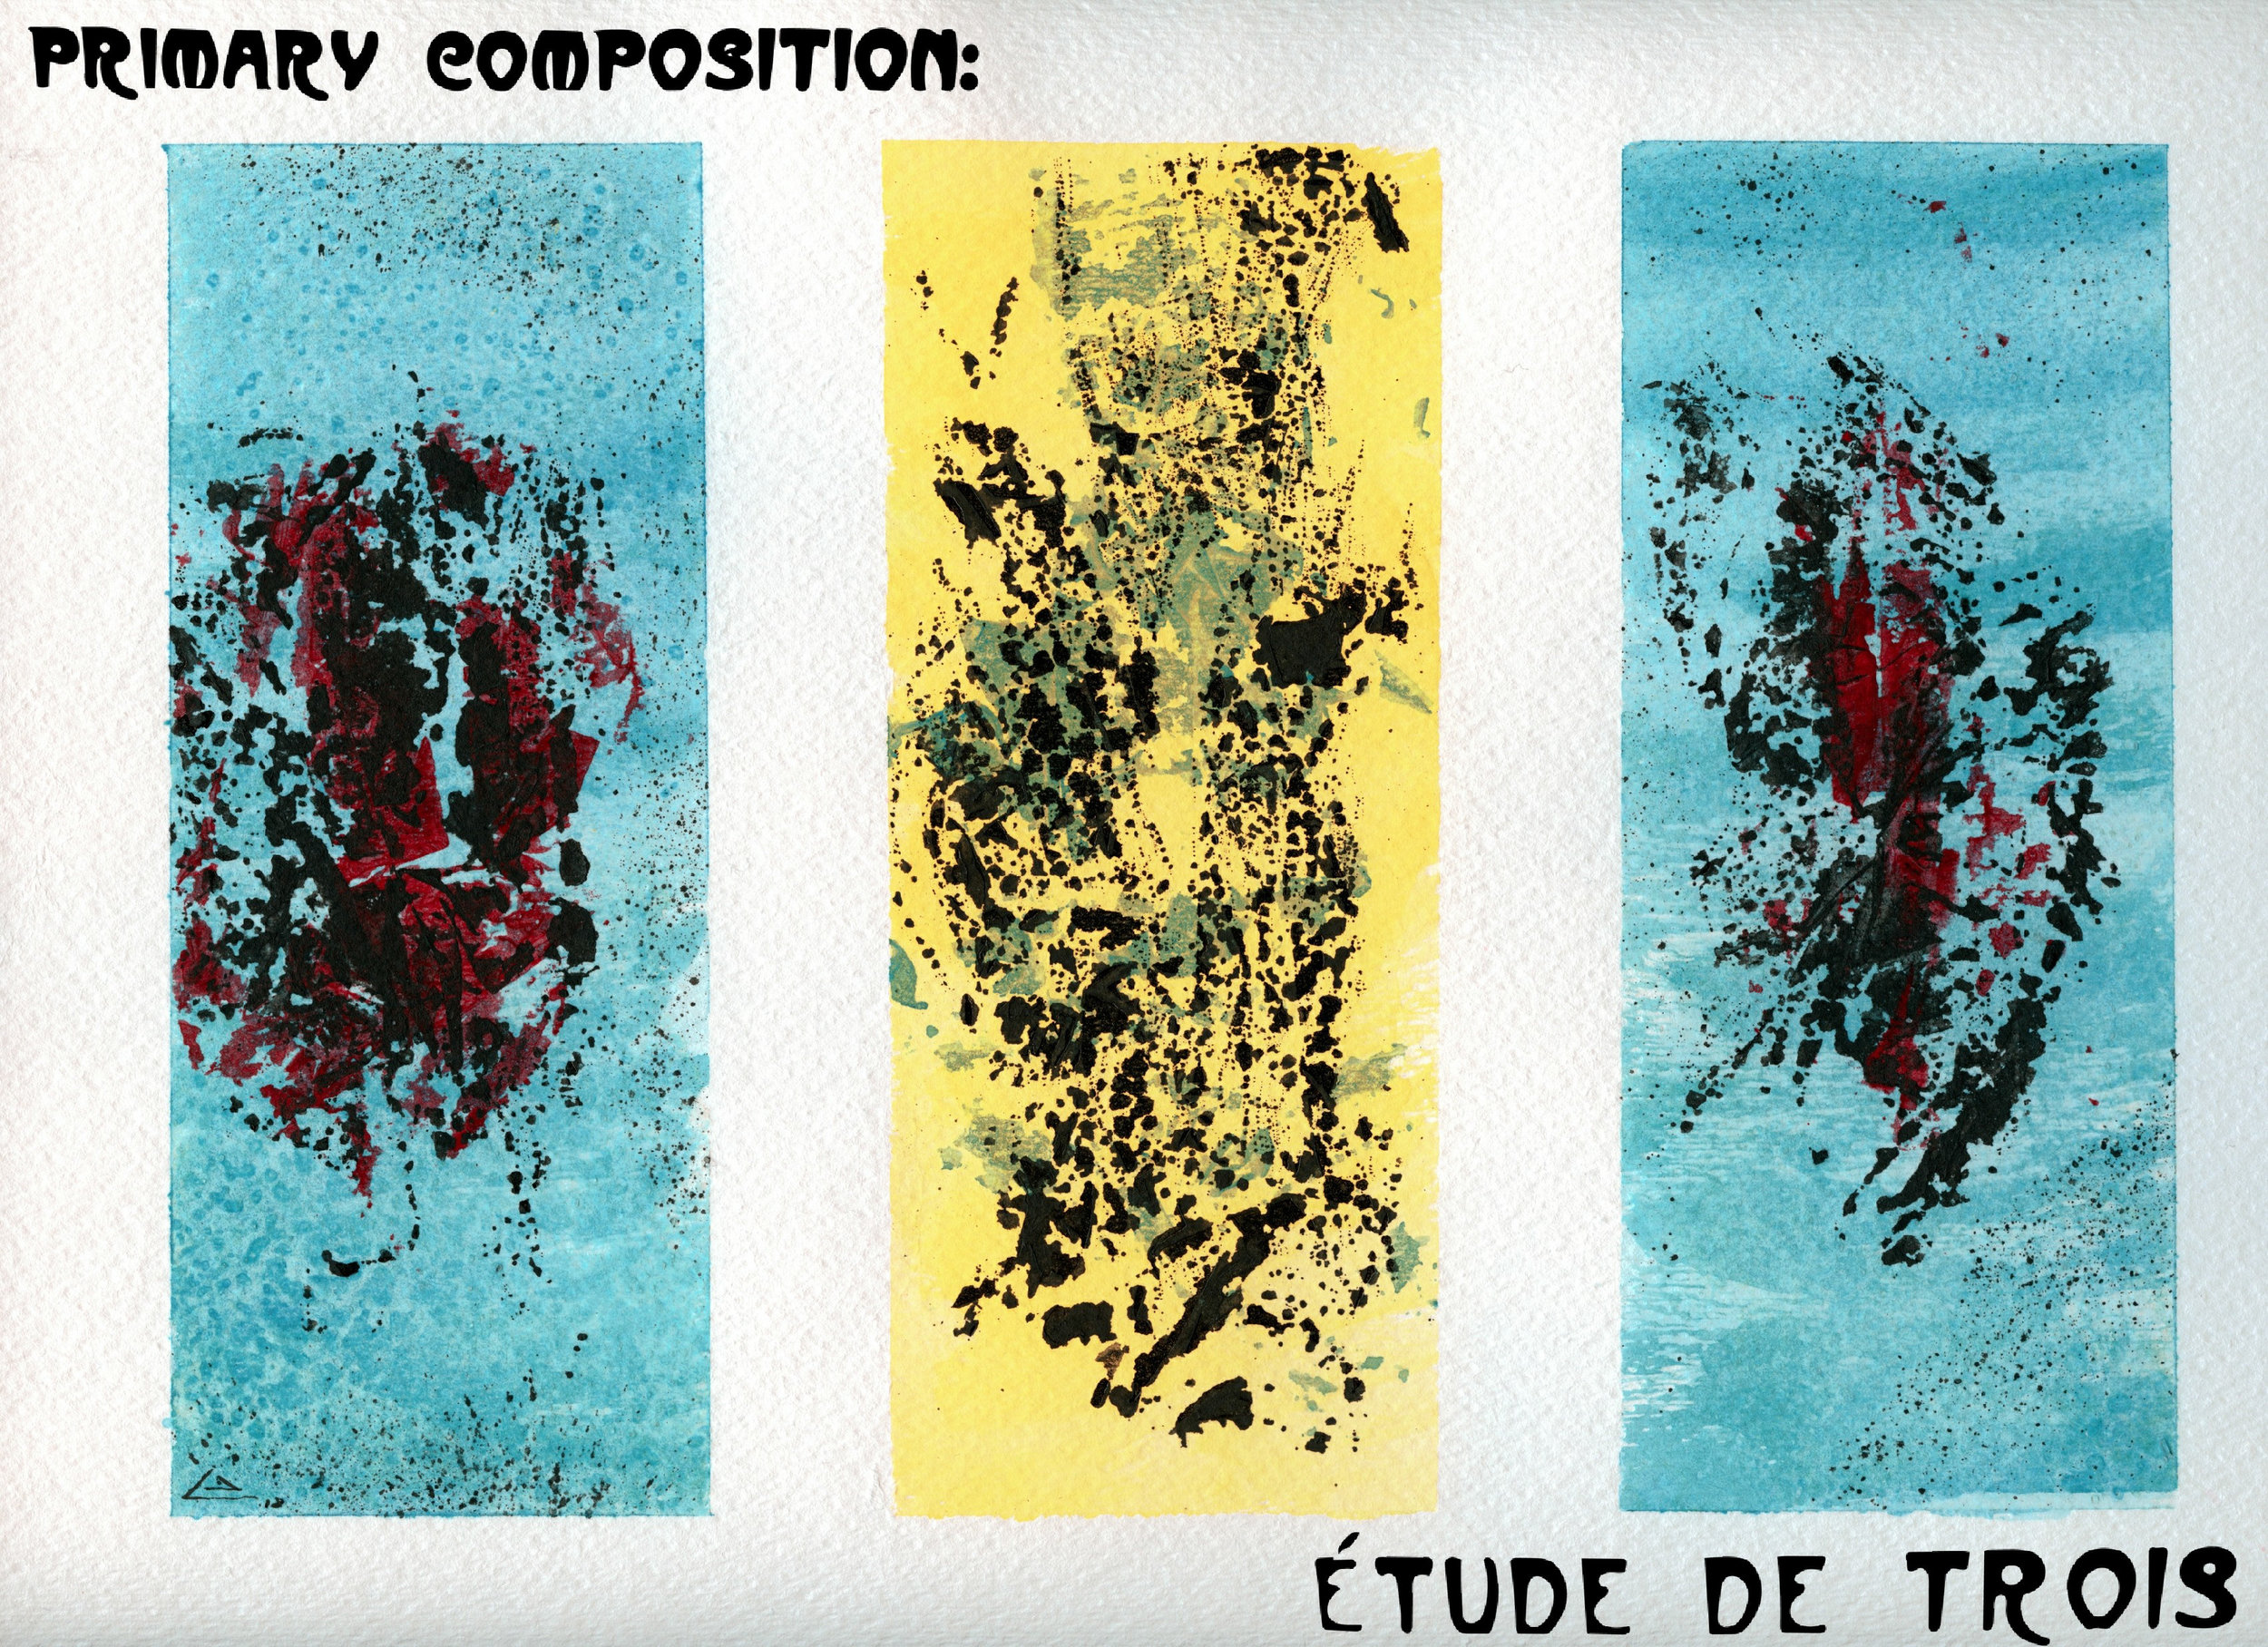 (Scan of watercolor painting in the Post Conventional Expressionist style.  M . Graham Artists' Watercolors used. 9x12 on cold press paper.)  Title - Primary Composition: étude de trois - 06/21/2018